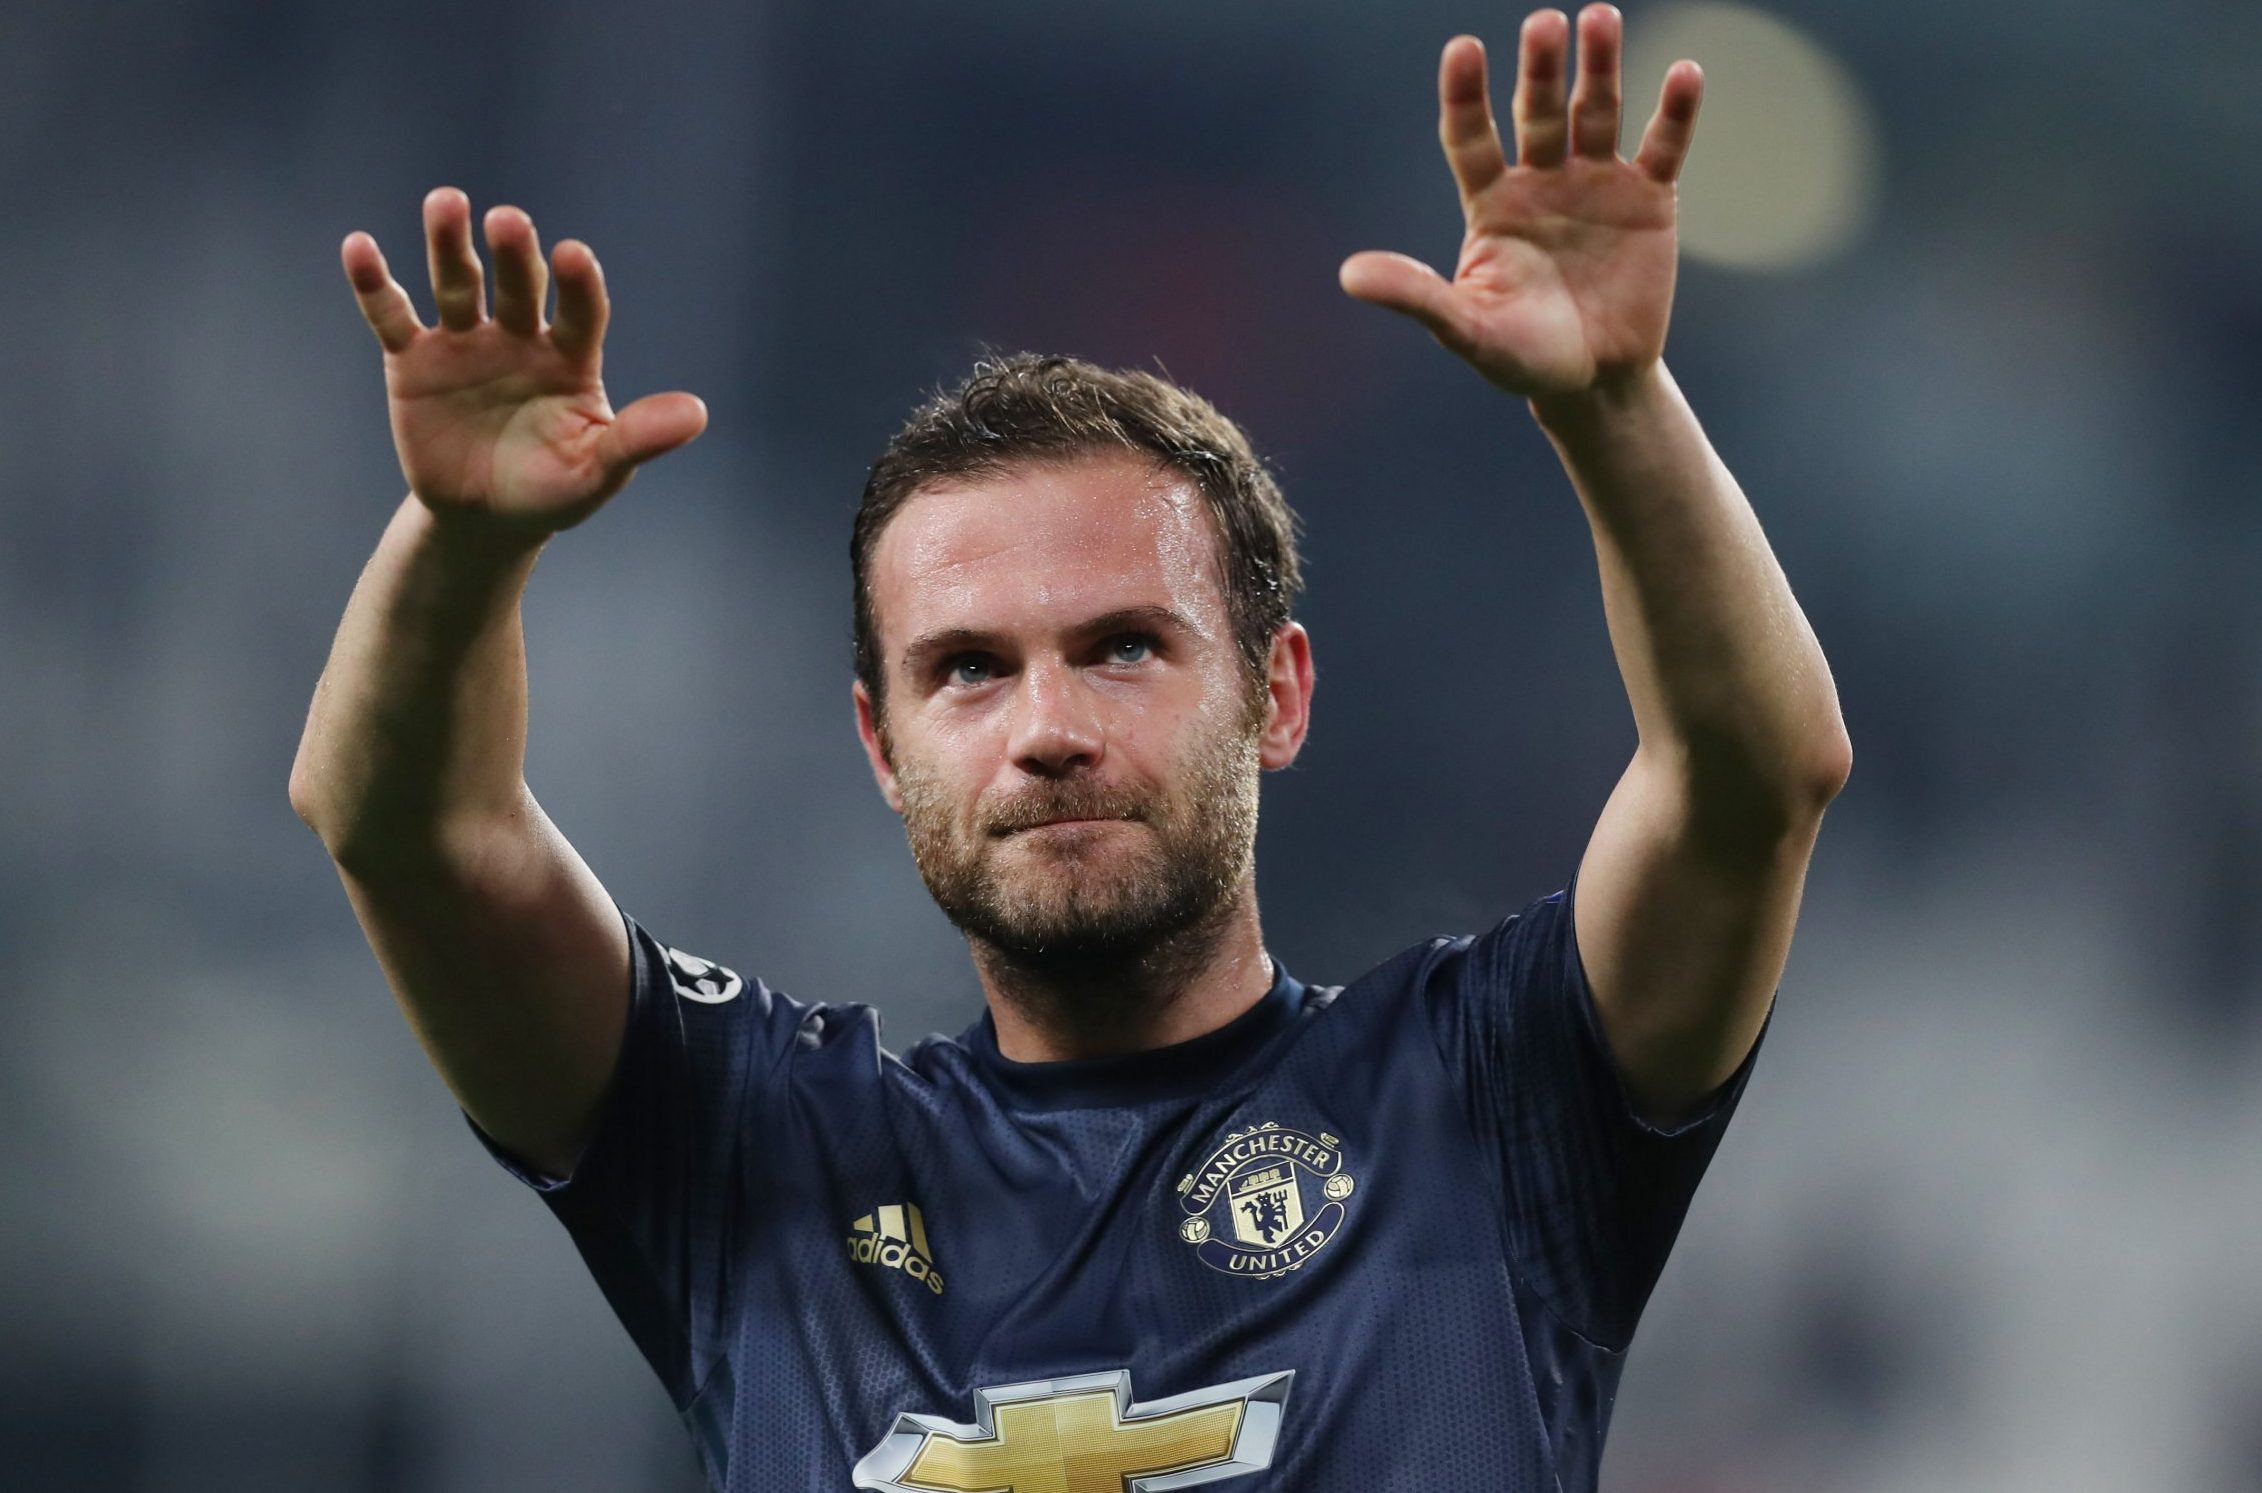 Mandatory Credit: Photo by Paul Currie/BPI/REX (9970191co) Juan Mata of Manchester United celebrates at full time Juventus v Manchester United, UEFA Champions League Group H, Football, Allianz Stadium, Turin, Italy - 07 Nov 2018